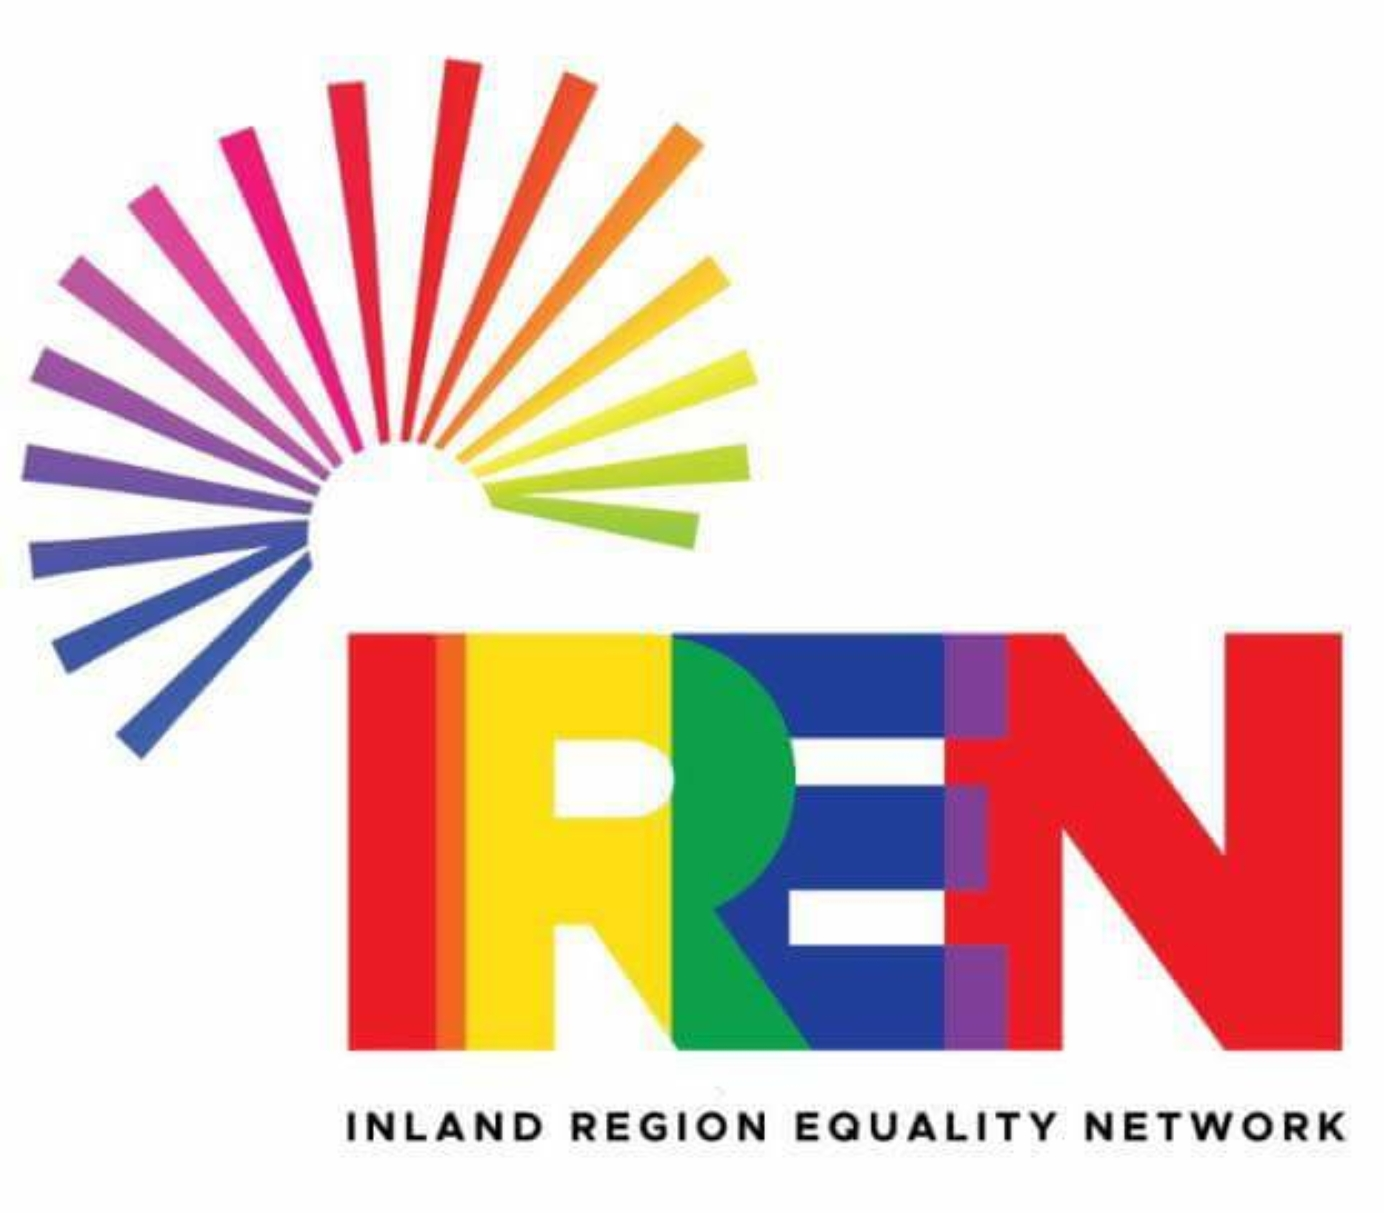 Inland Region Equality Network